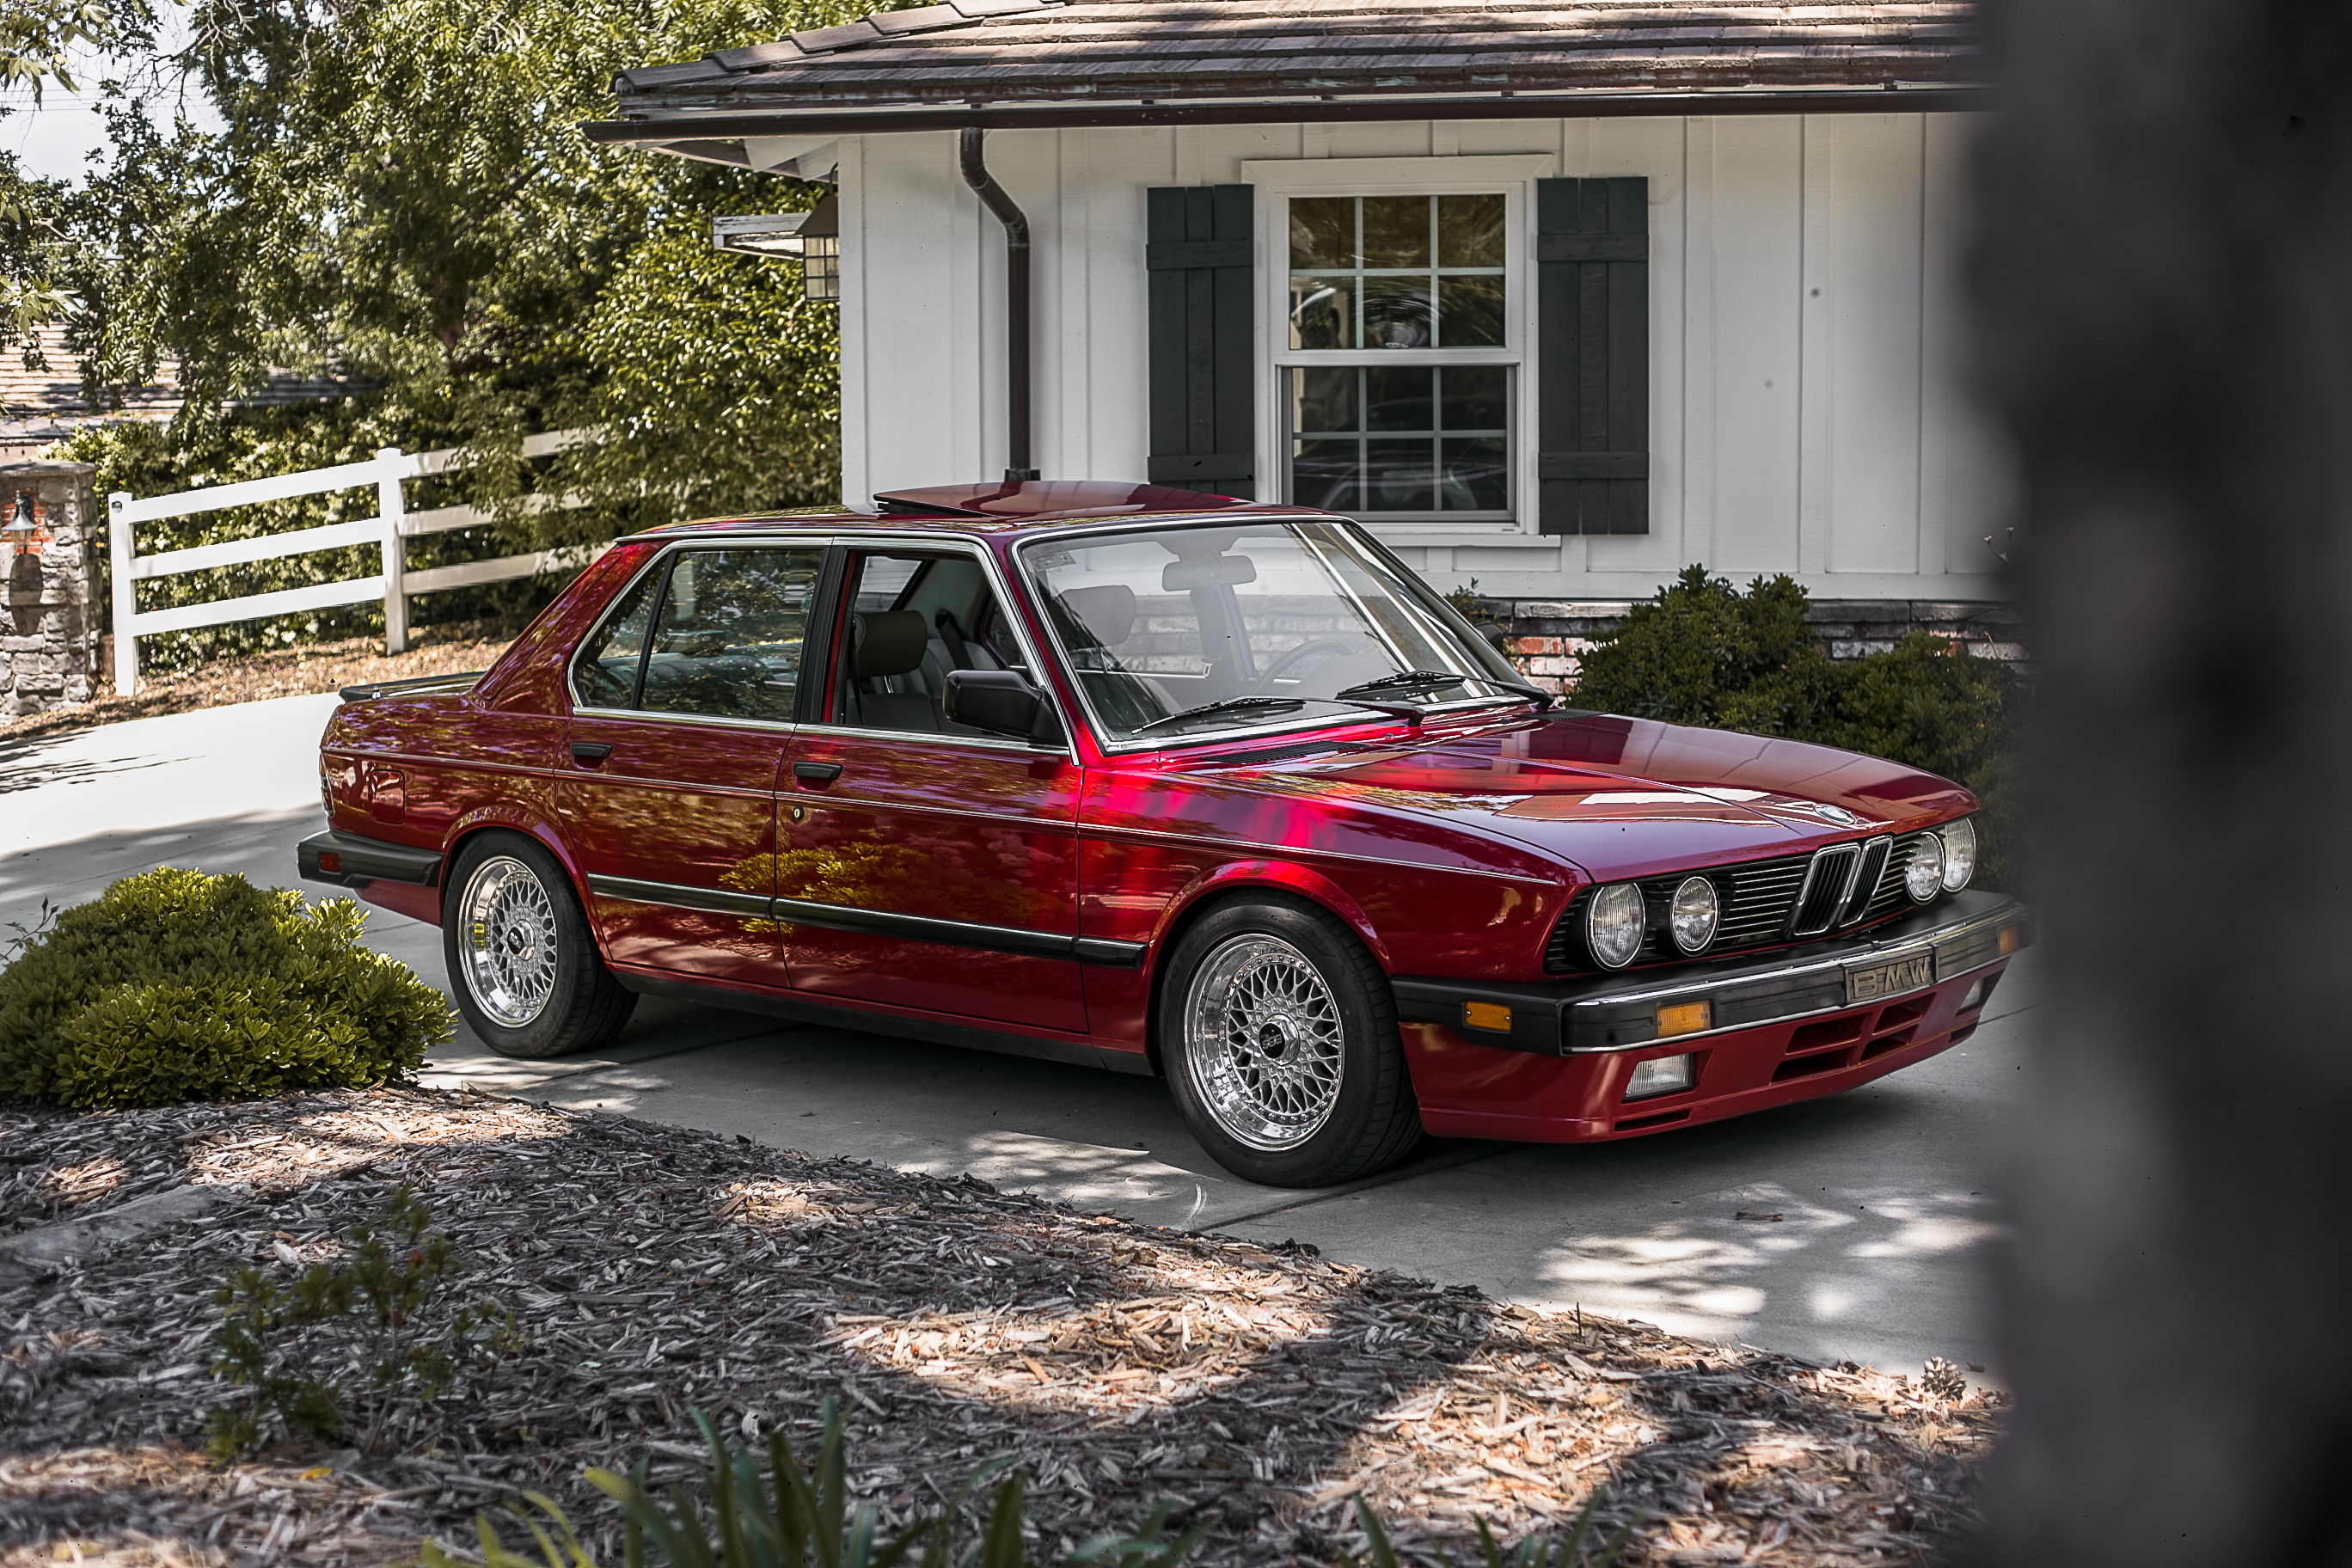 Austin Caccavo's 1987 BMW 535is.